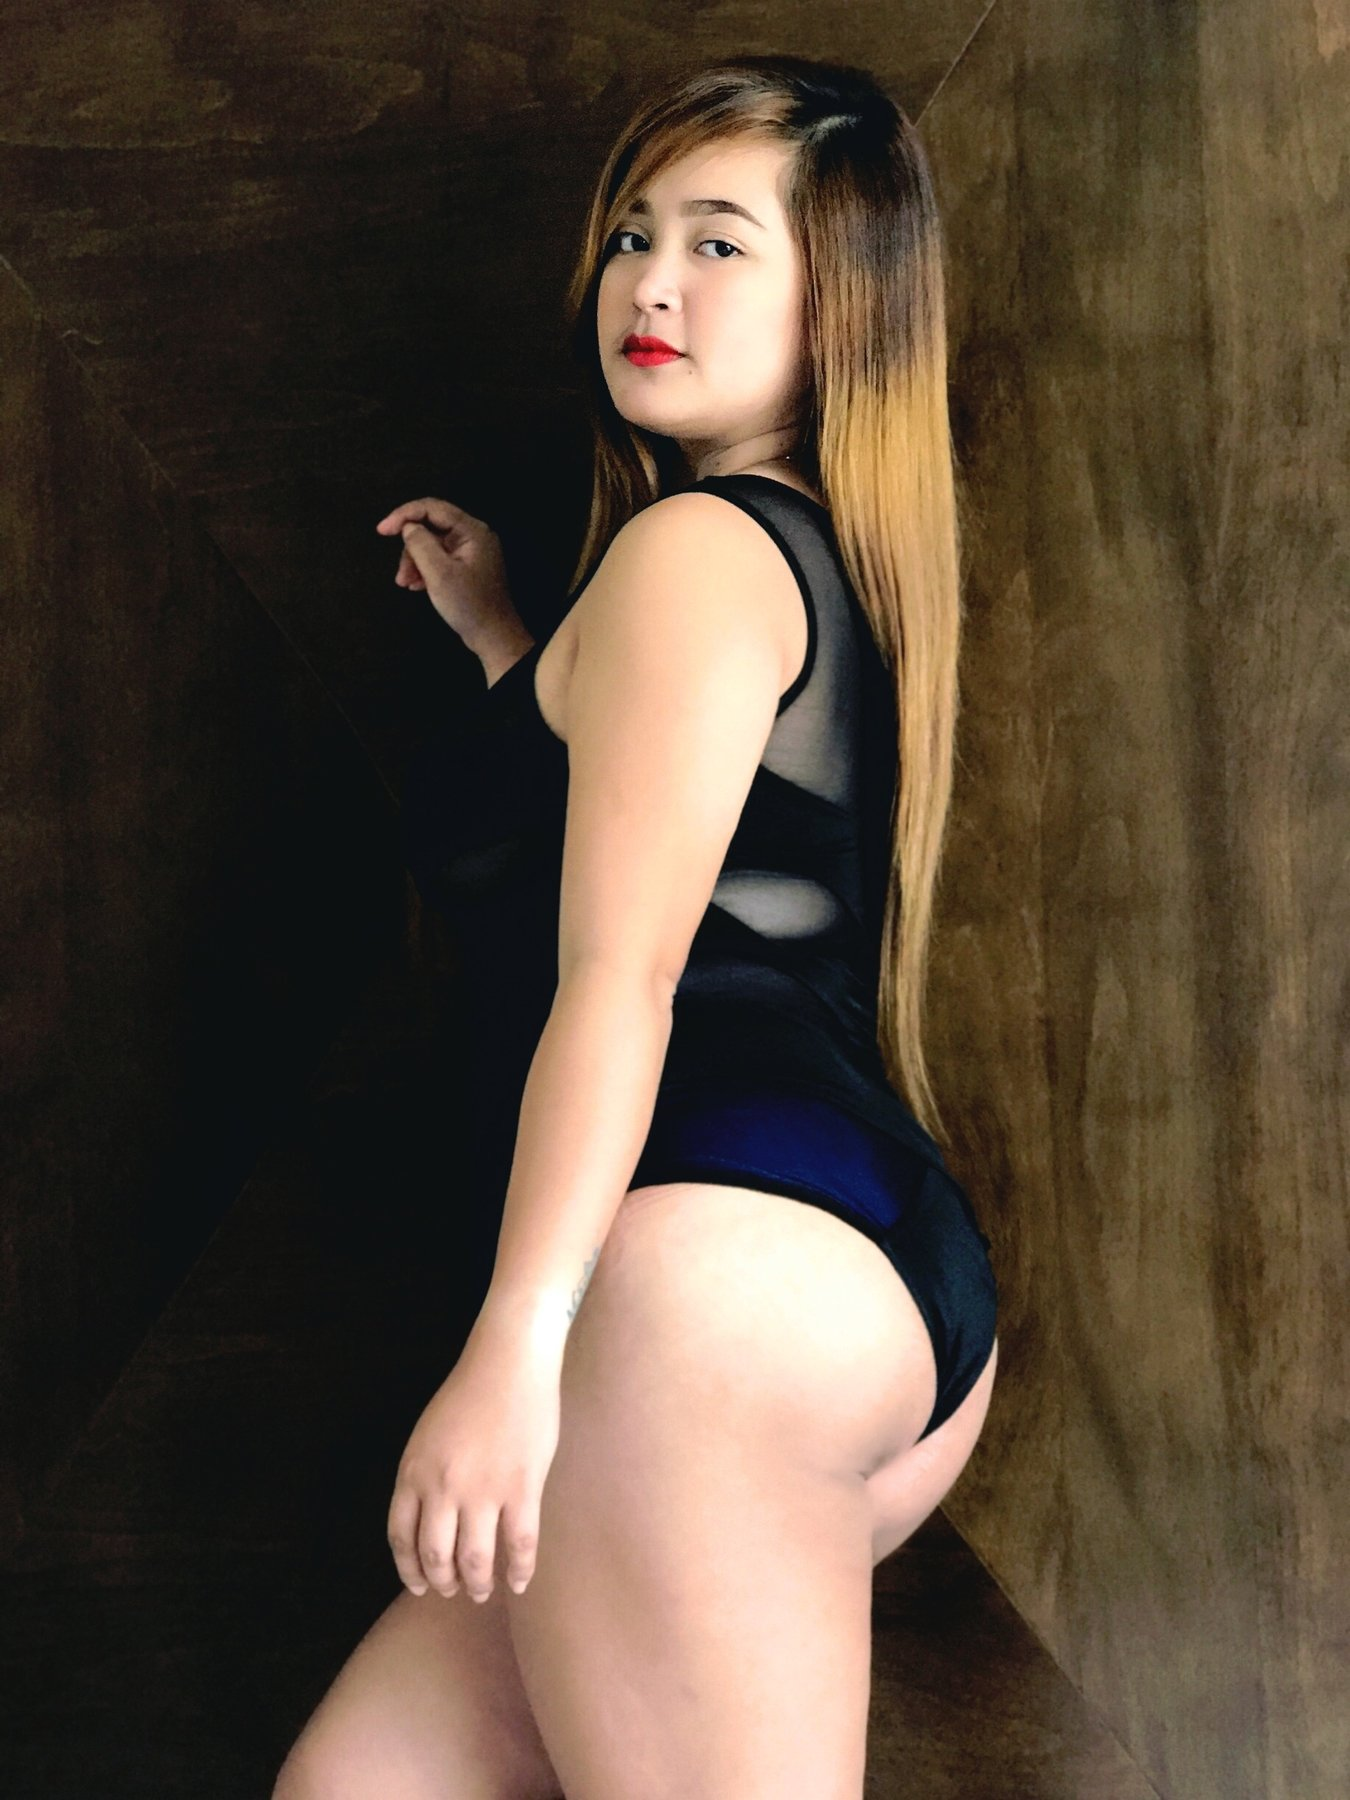 Escorts in the phillipines